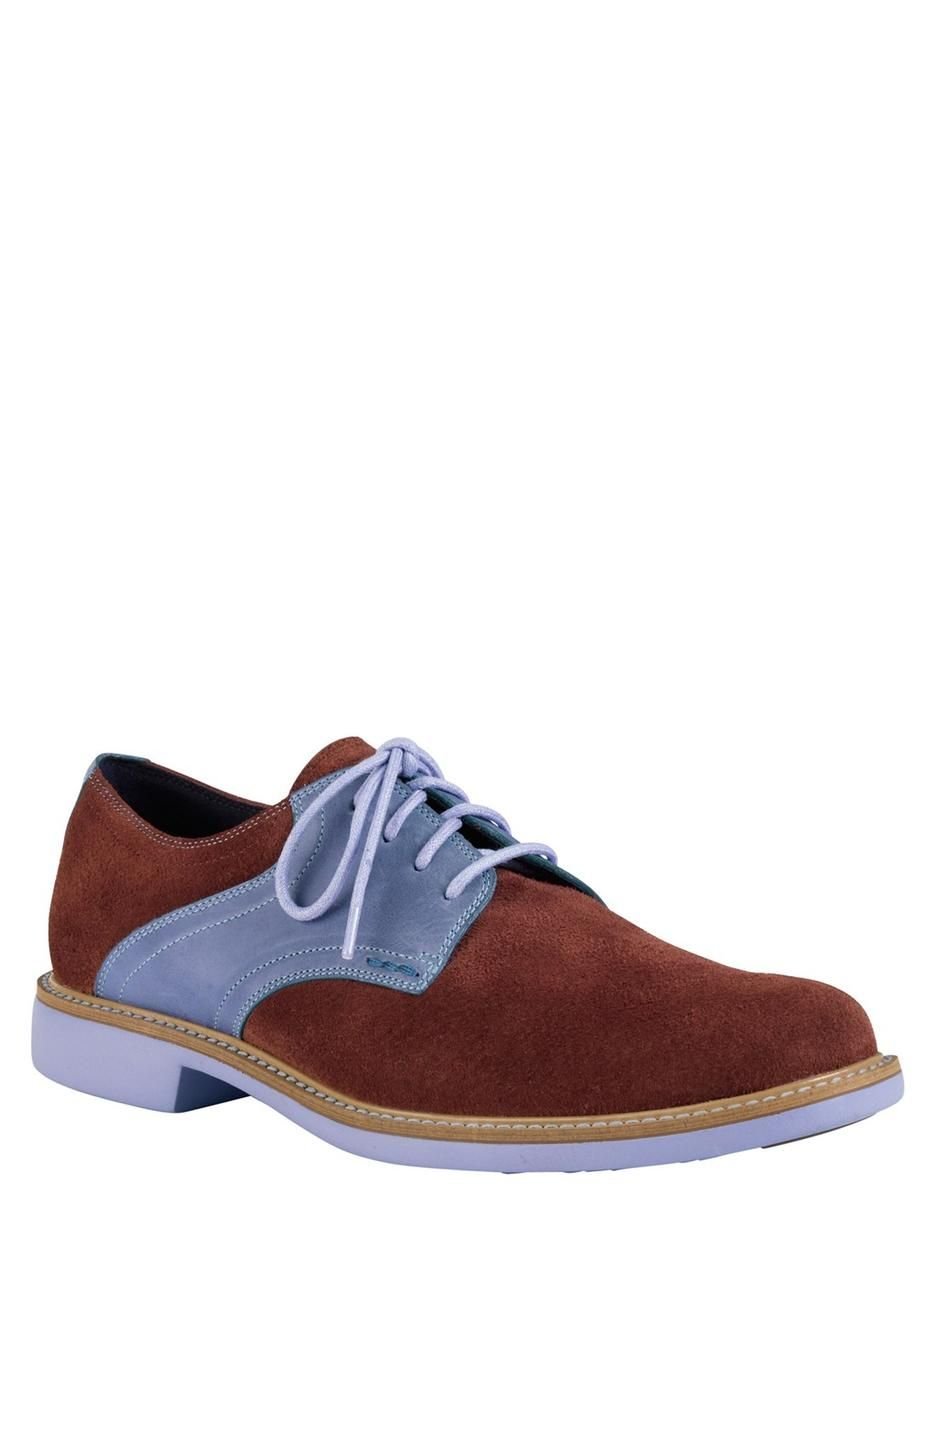 c7e0708ac94 Cole Haan  Great Jones  Saddle Shoe available at